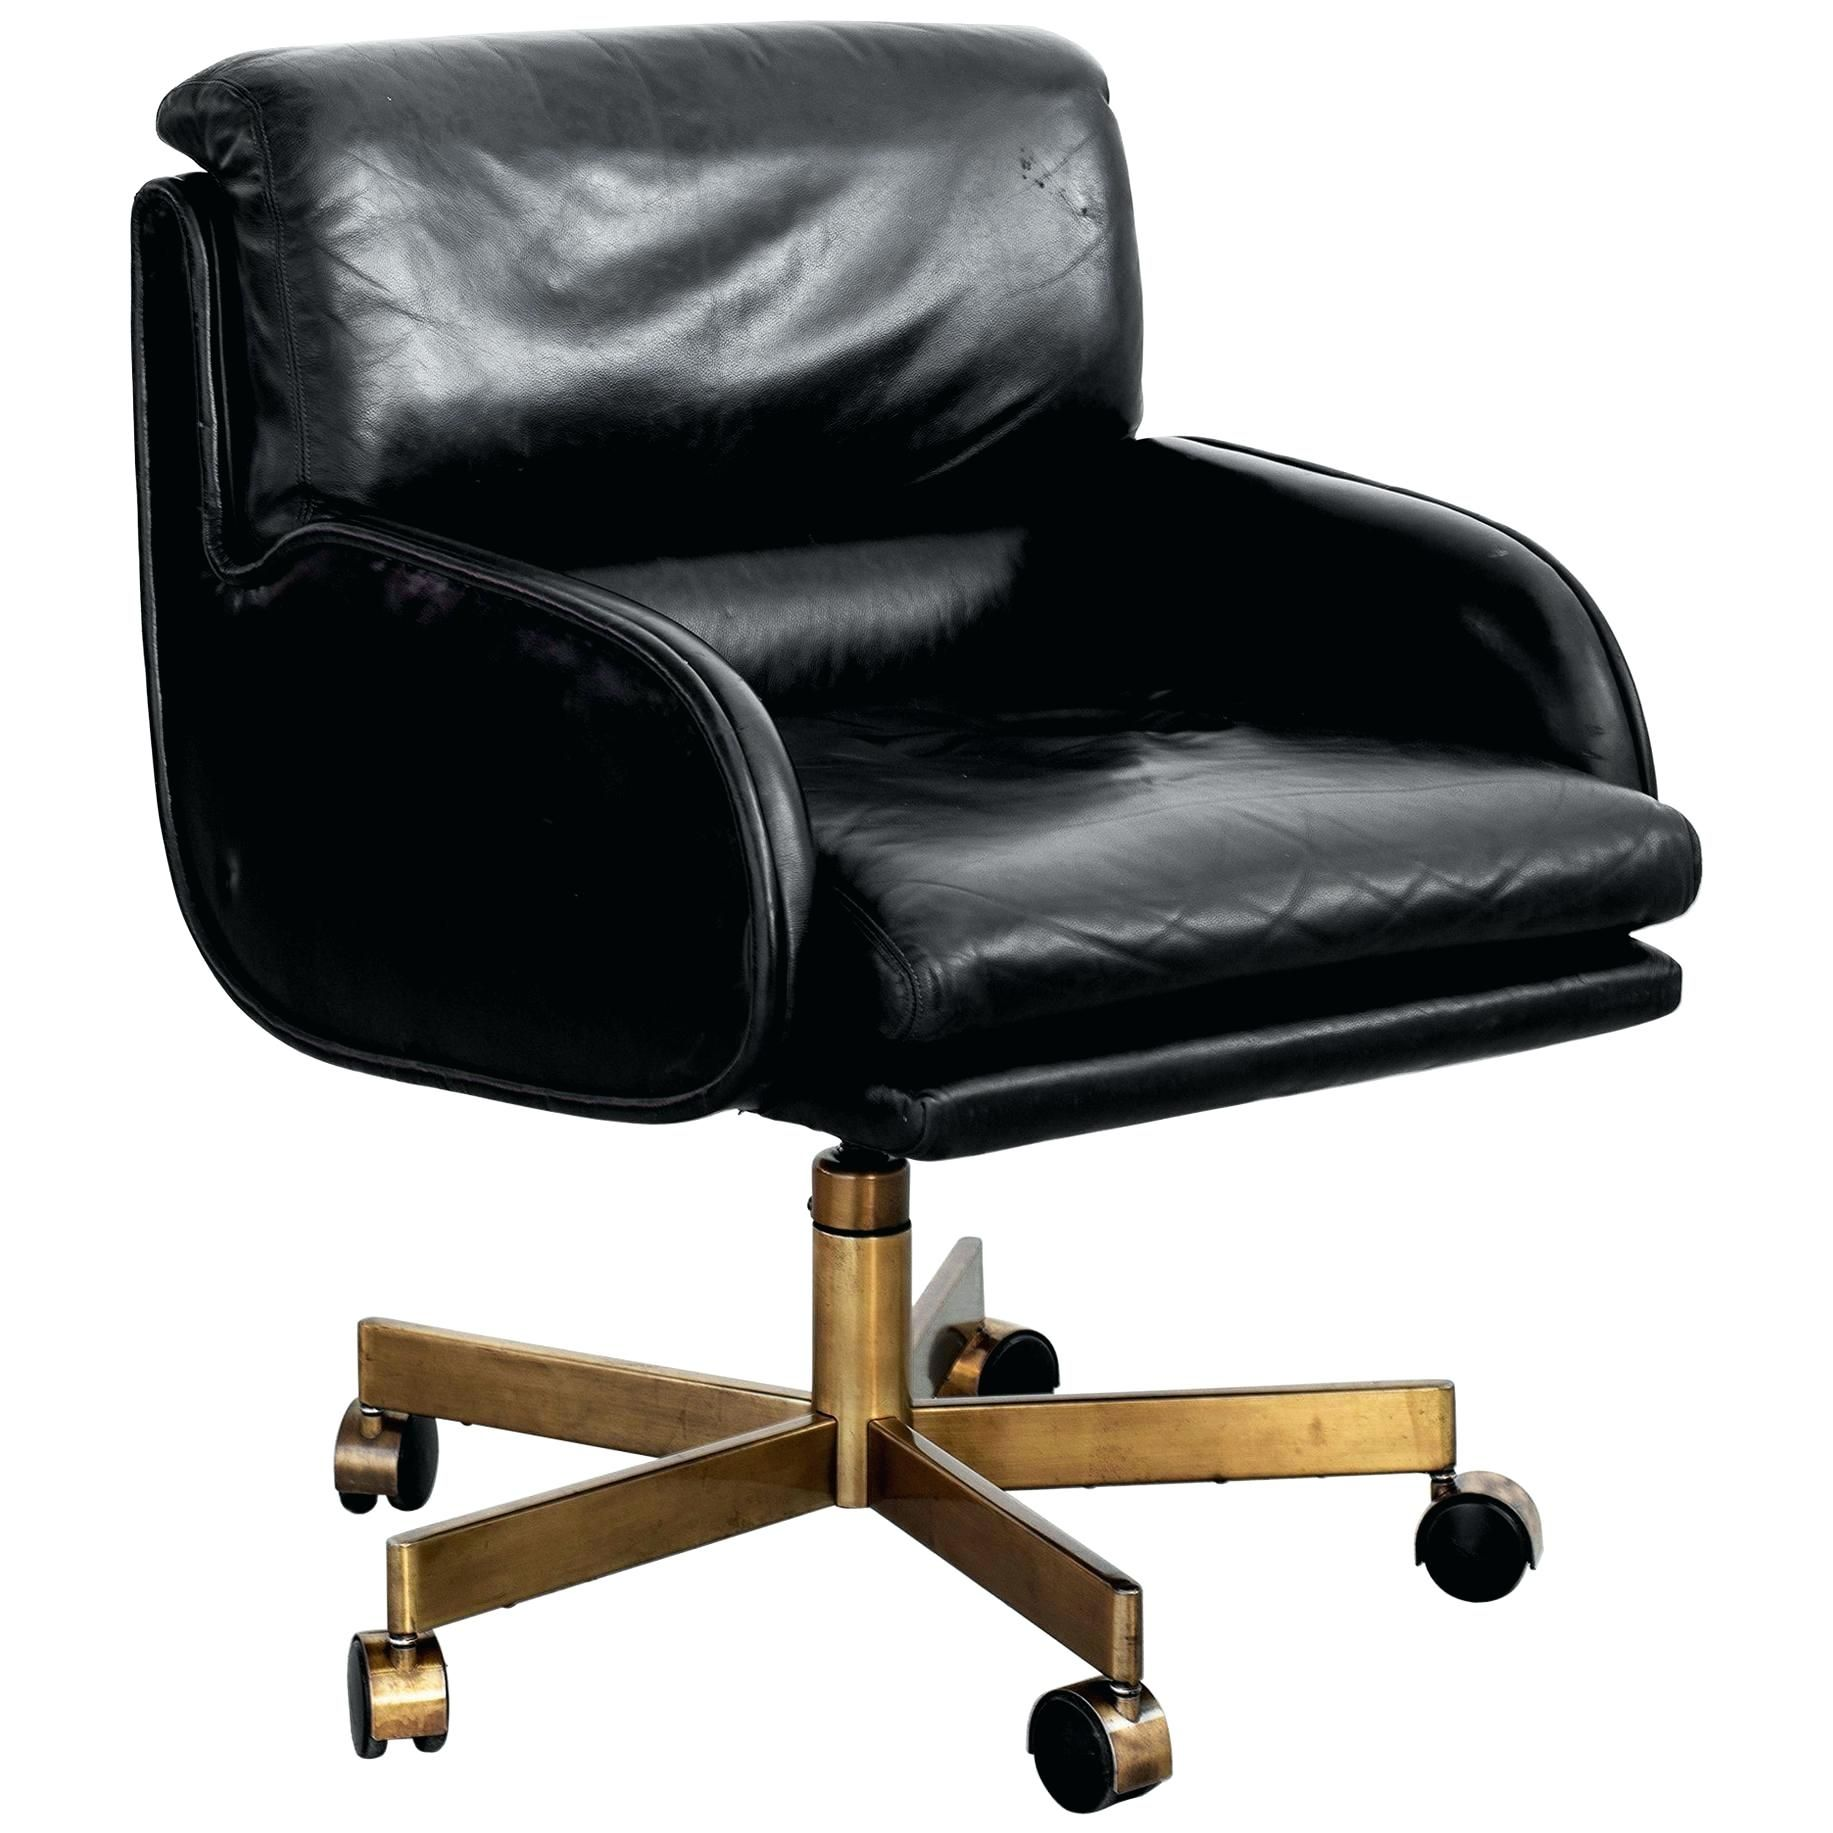 Where To Buy Office Furniture Near Me